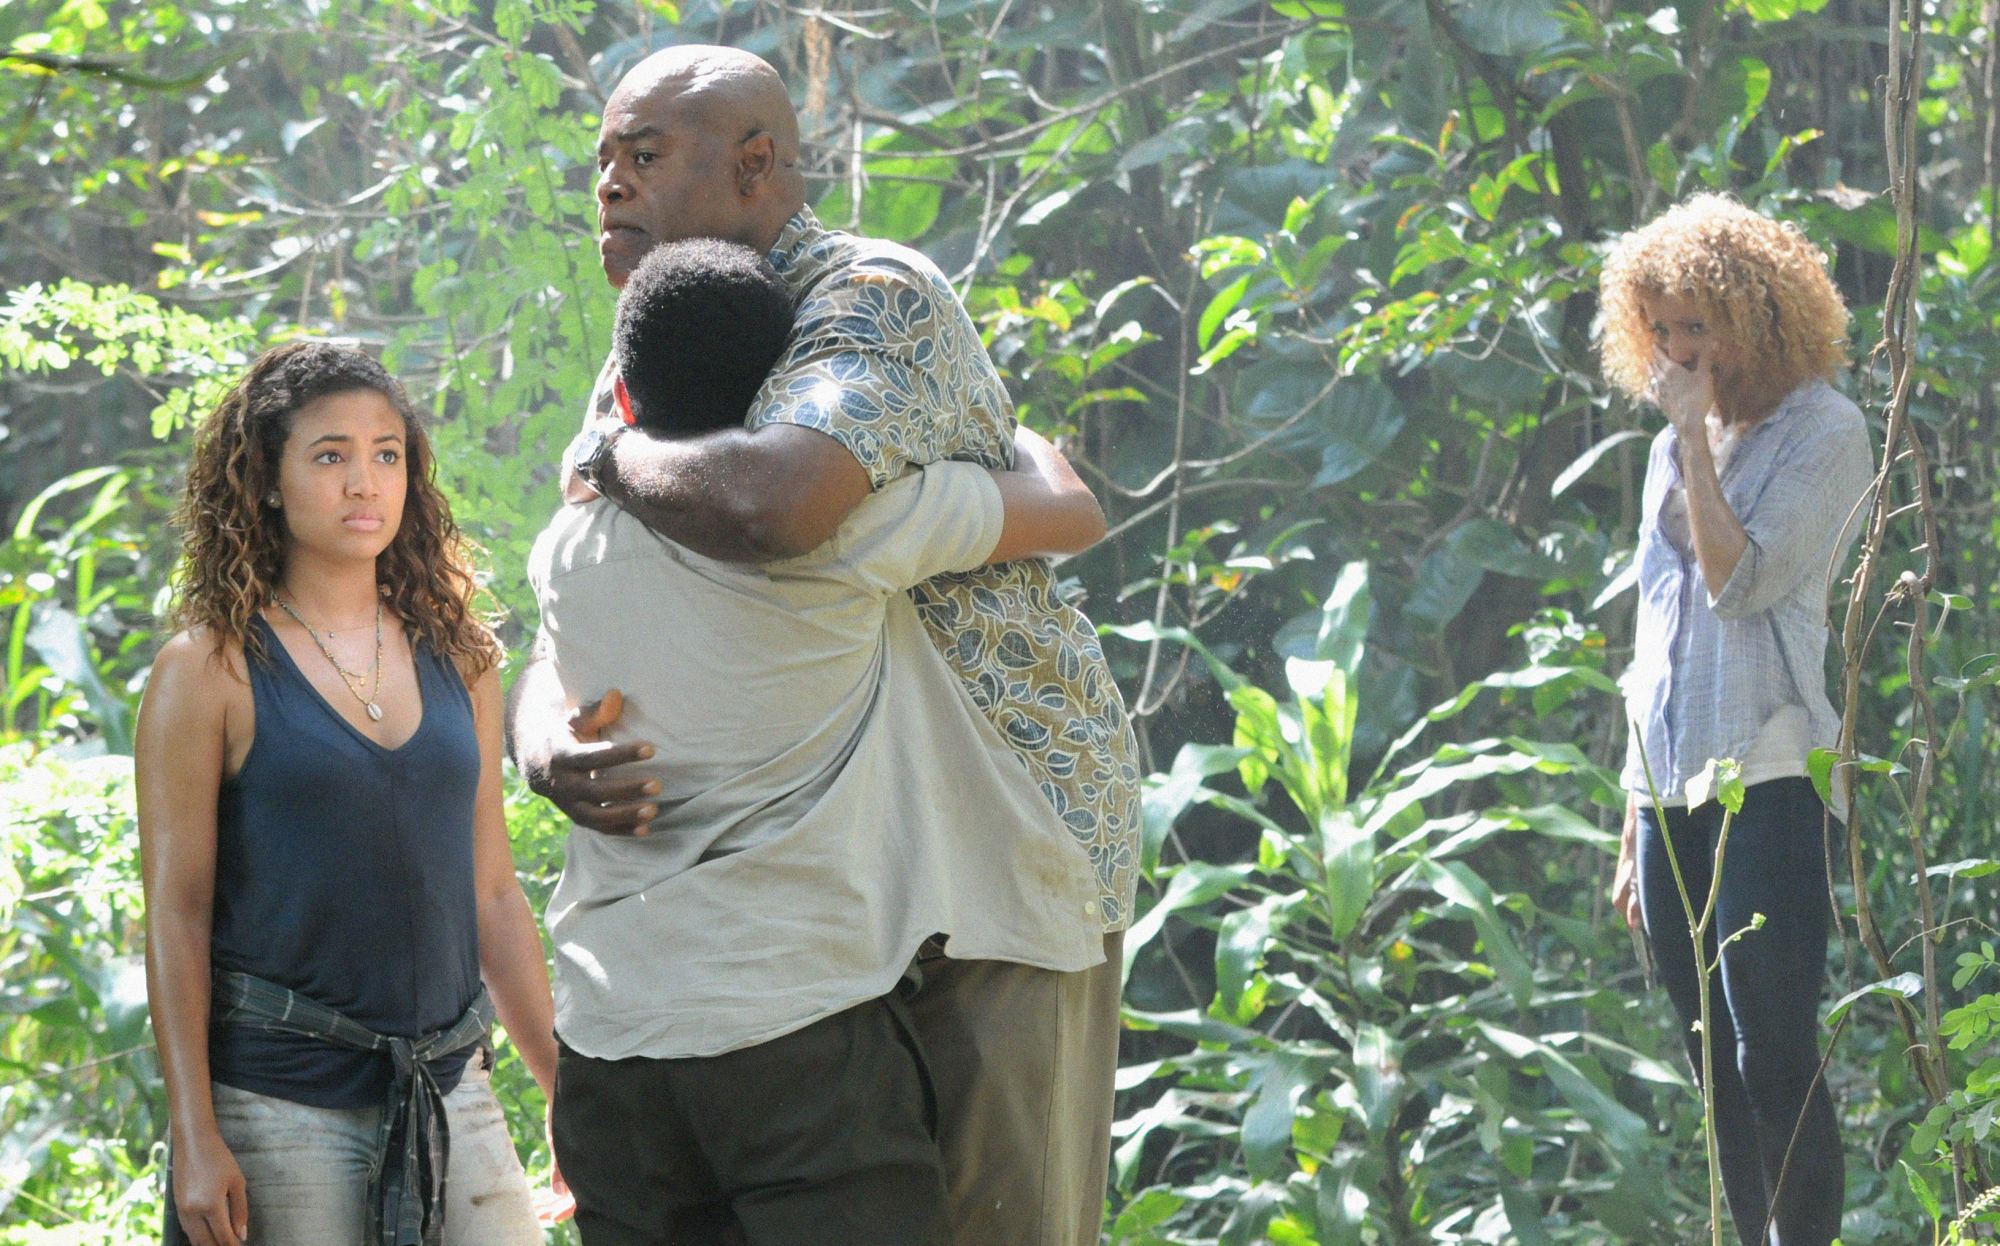 Paige Hurd as Samantha Grover, Chosen Jacobs as Will Grover, Chi McBride as Lou Grover, and Michelle Hurd as Renee Grover